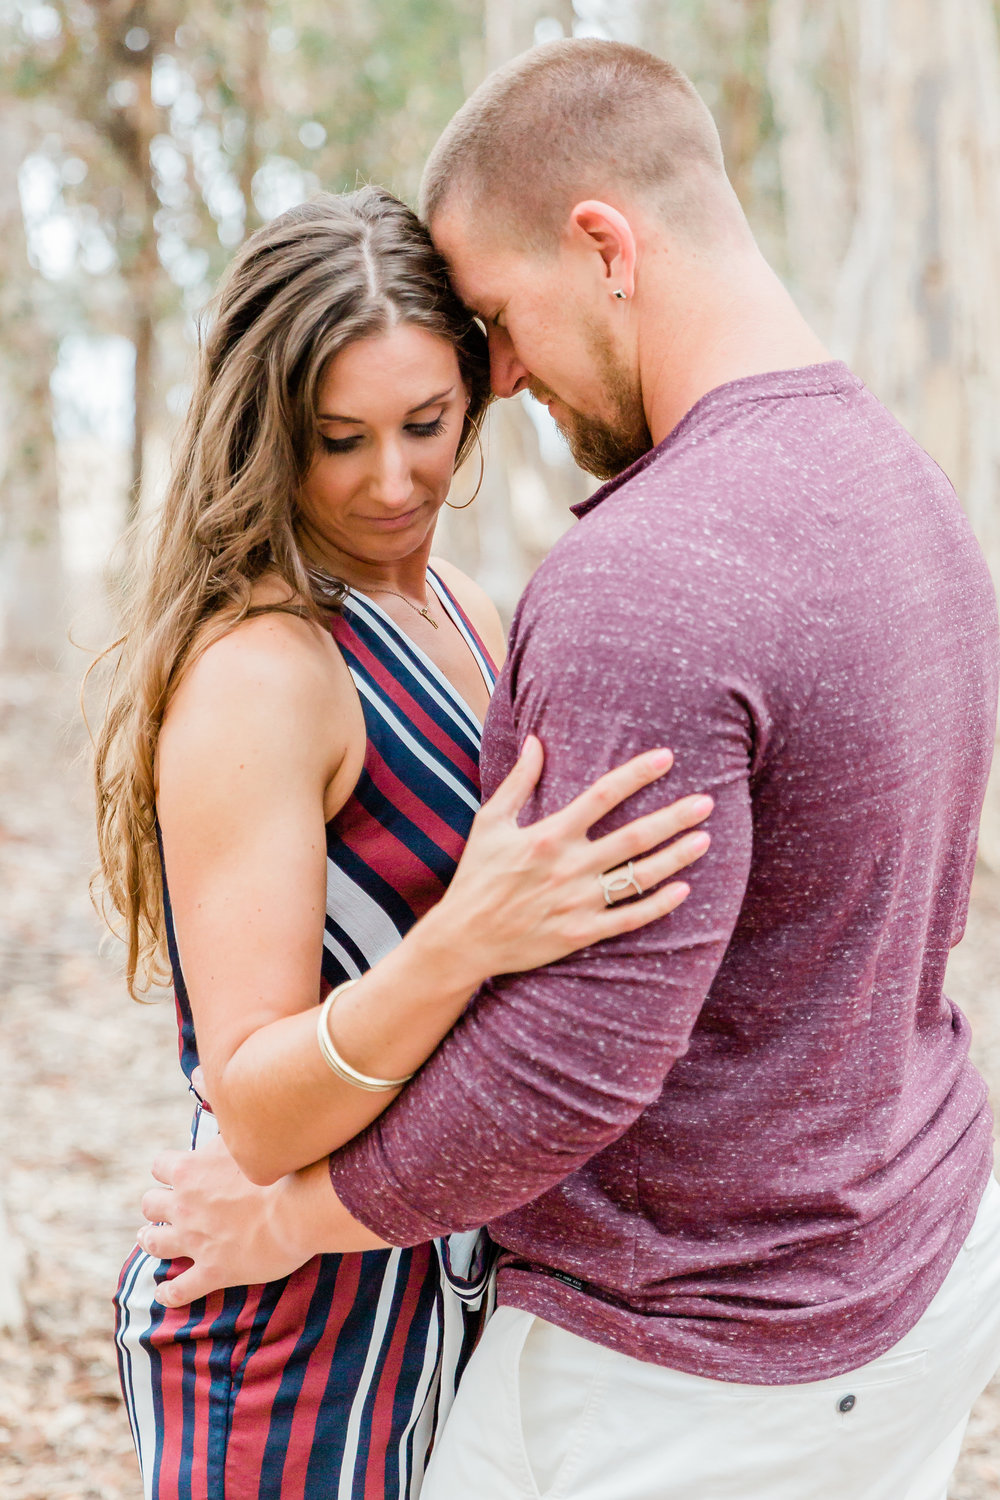 KimandPatrick-Engaged-LaurenAlissePhotography-34.jpg